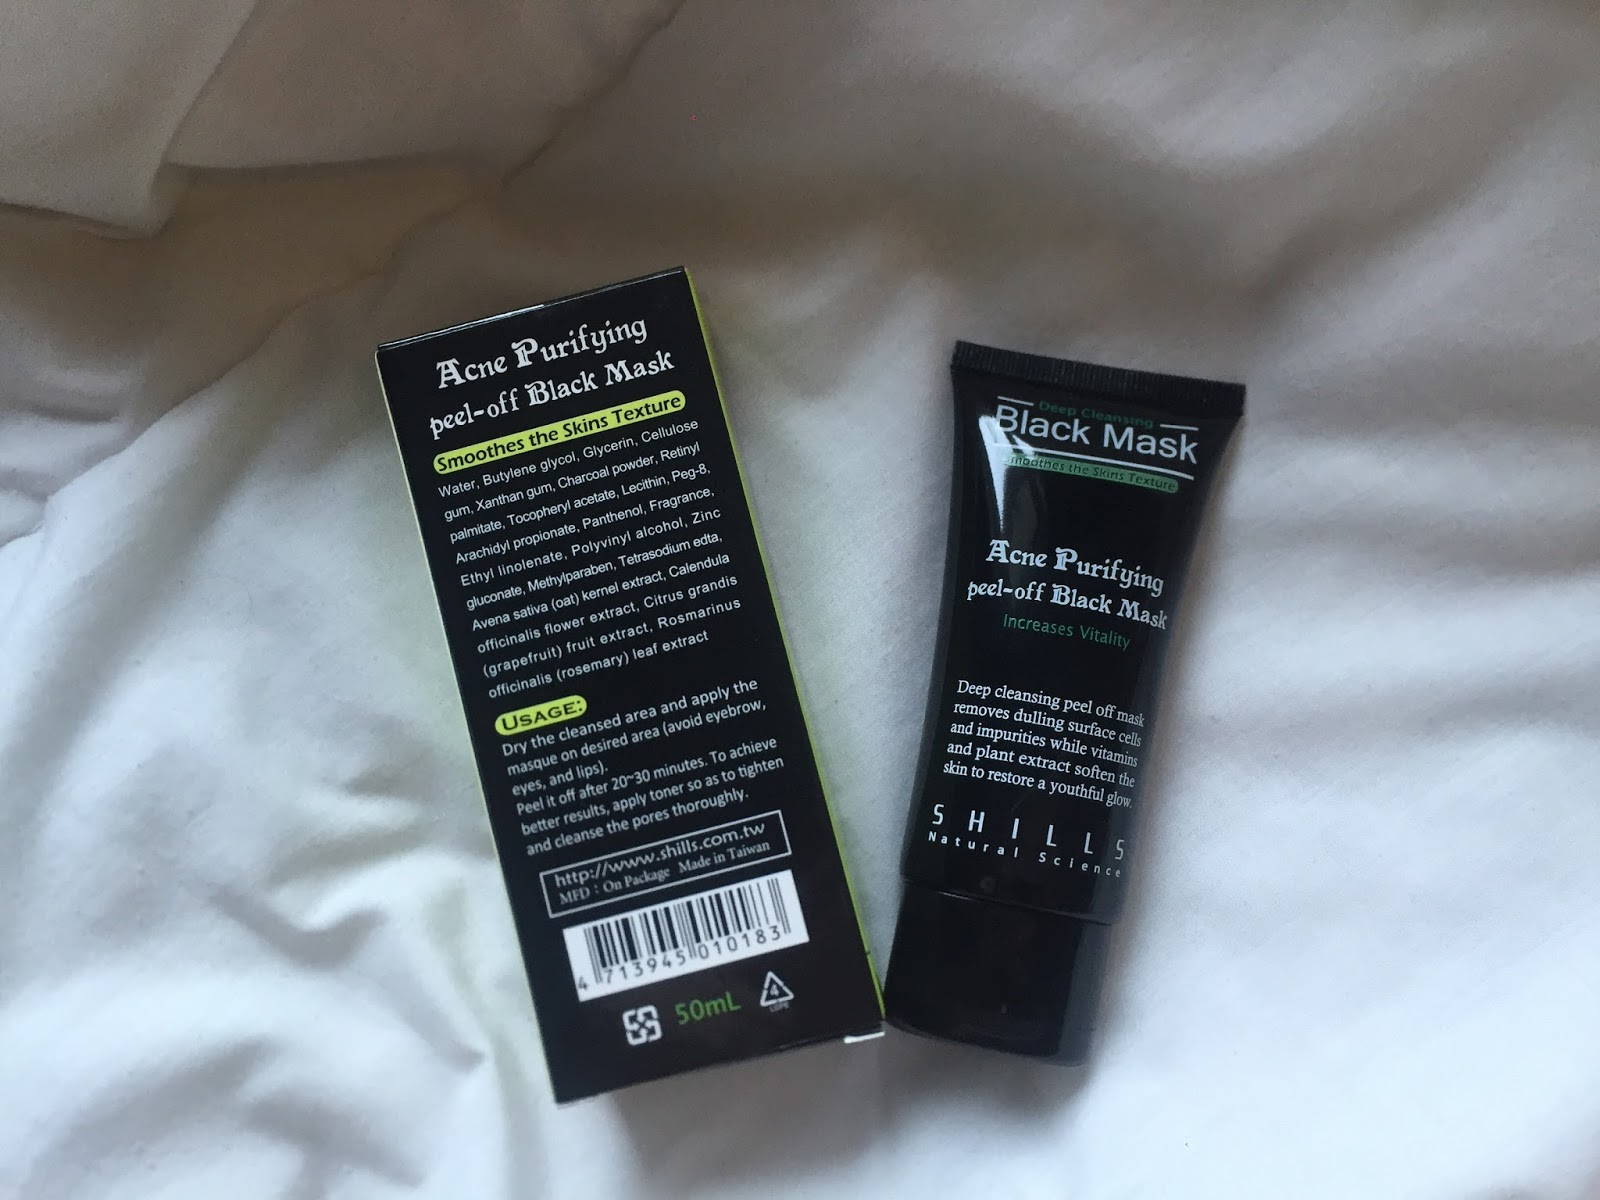 Shania Evelyn Advert Shills Acne Purifying Peel Off Black Mask Also Its The Most Inexpensive Youll Ever Buy At 1850 Your Face Will Be Flawless And Free